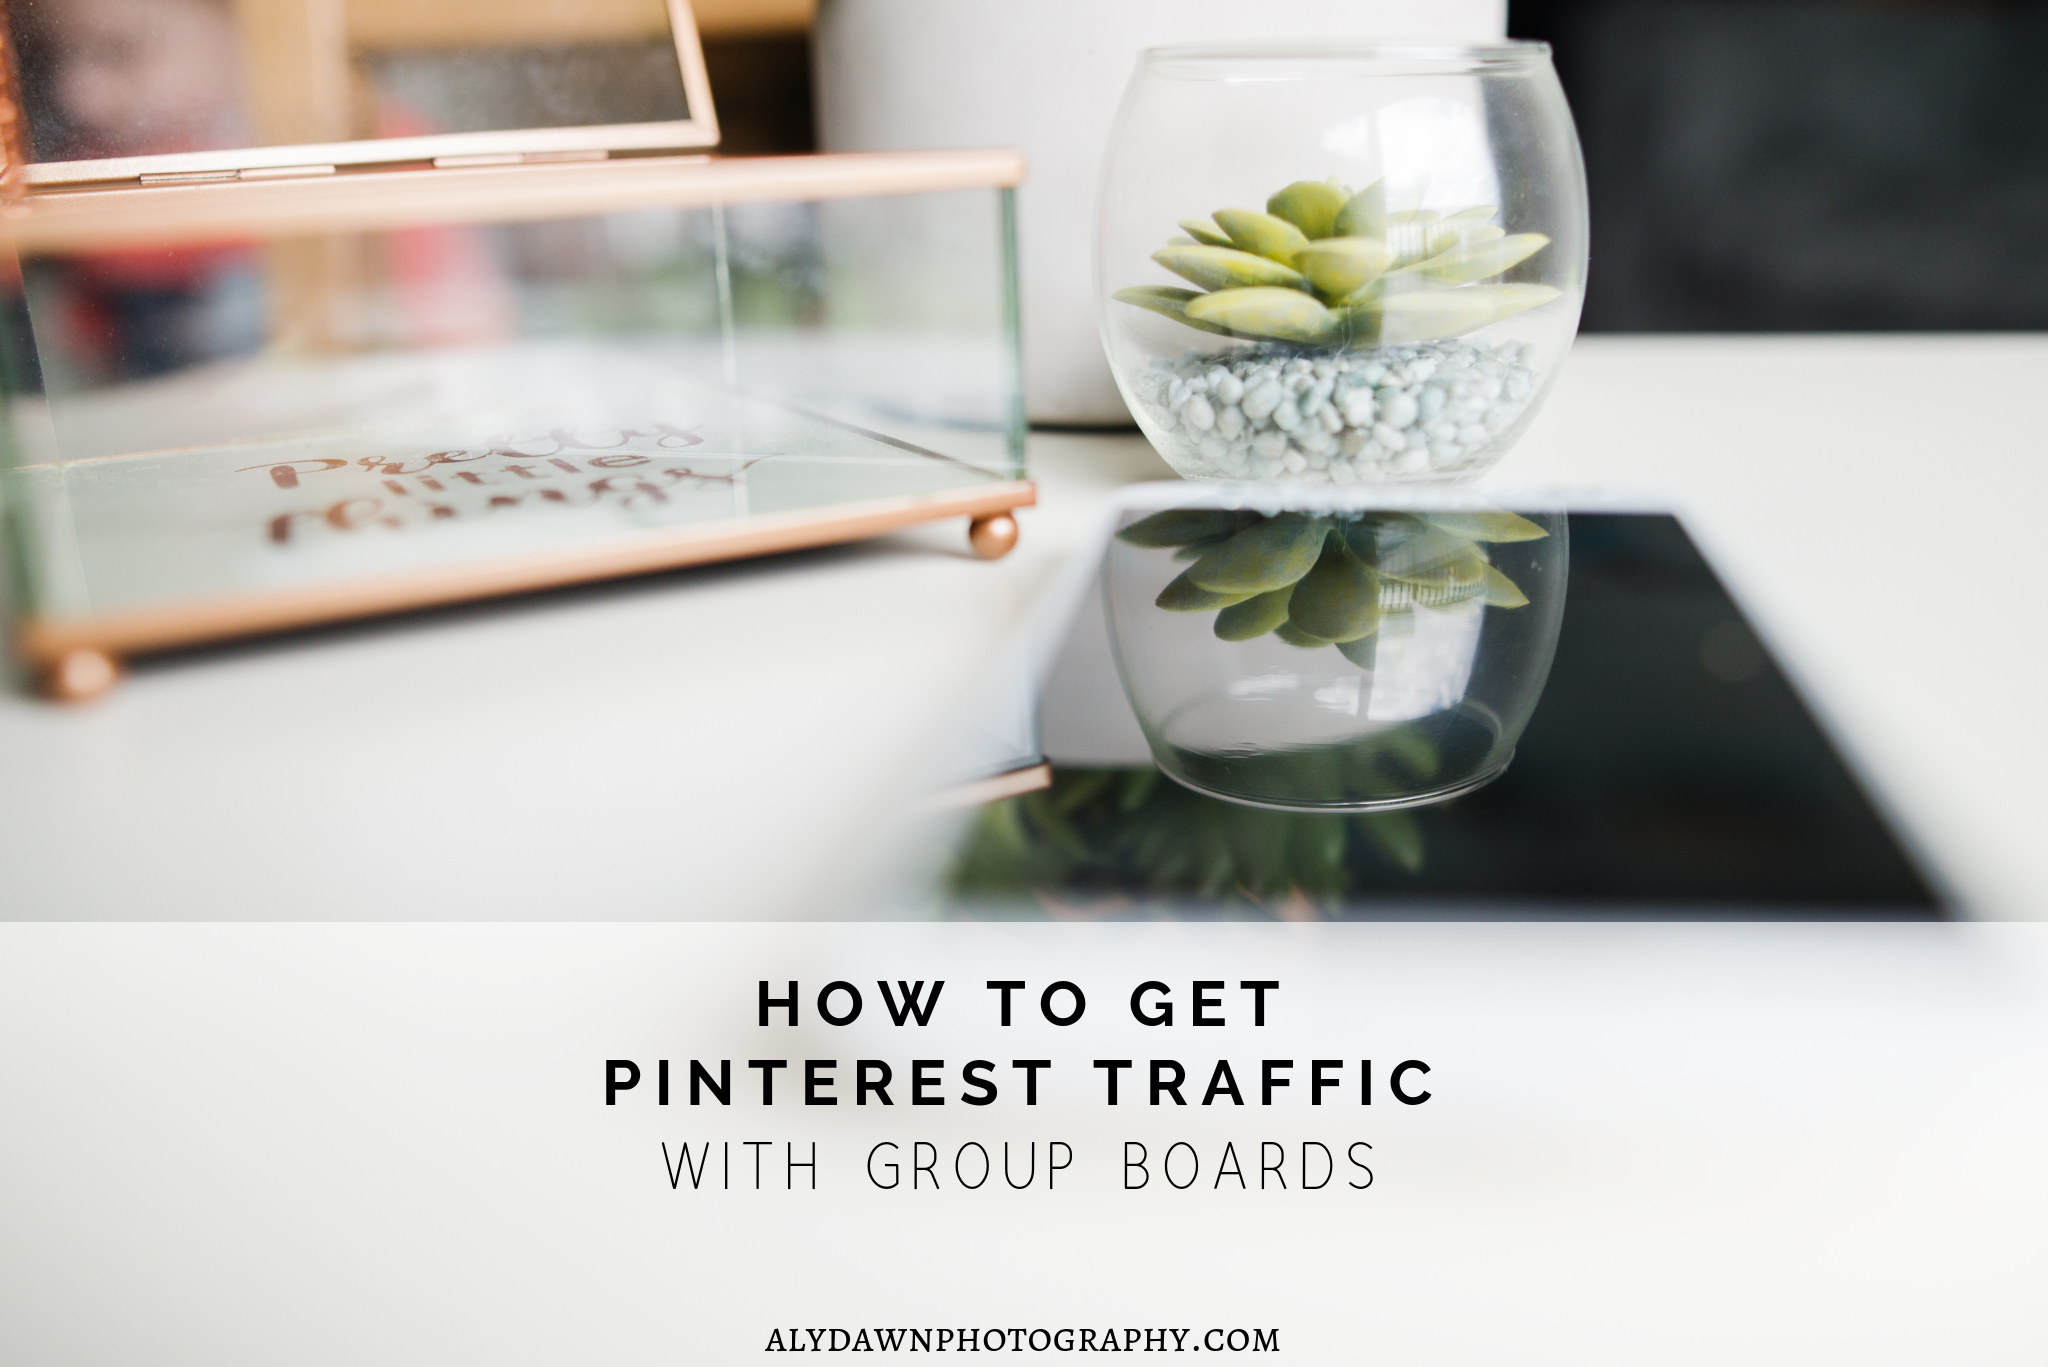 How to Get Pinterest Traffic With Group Boards